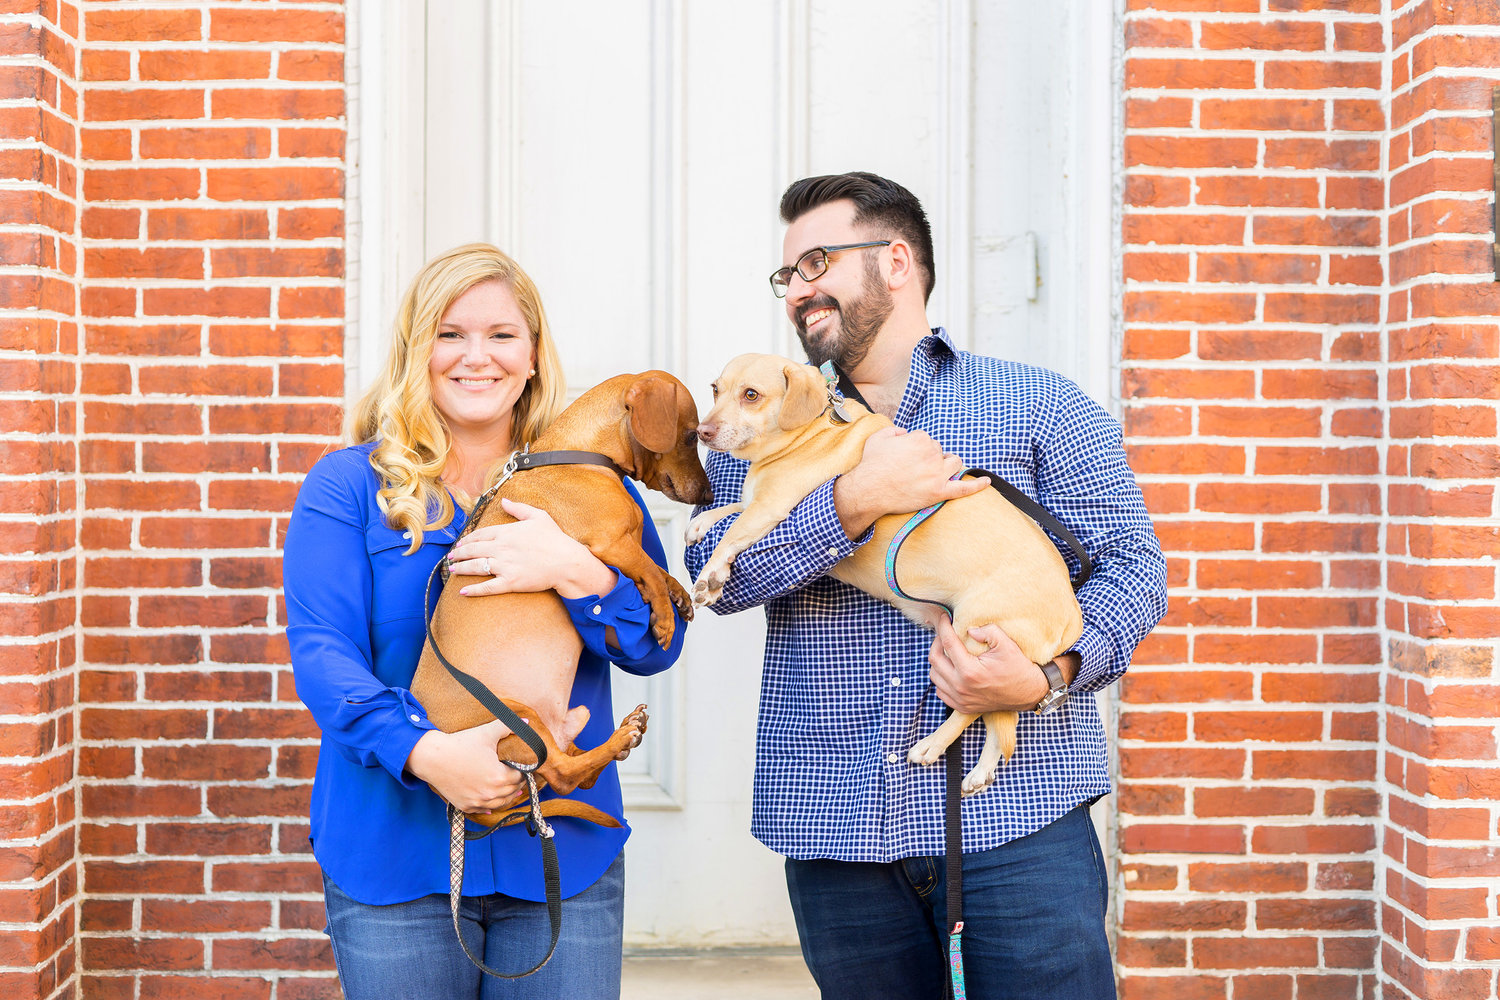 Old Town Alexandria engagement session with dogs by Jessica Nazarova